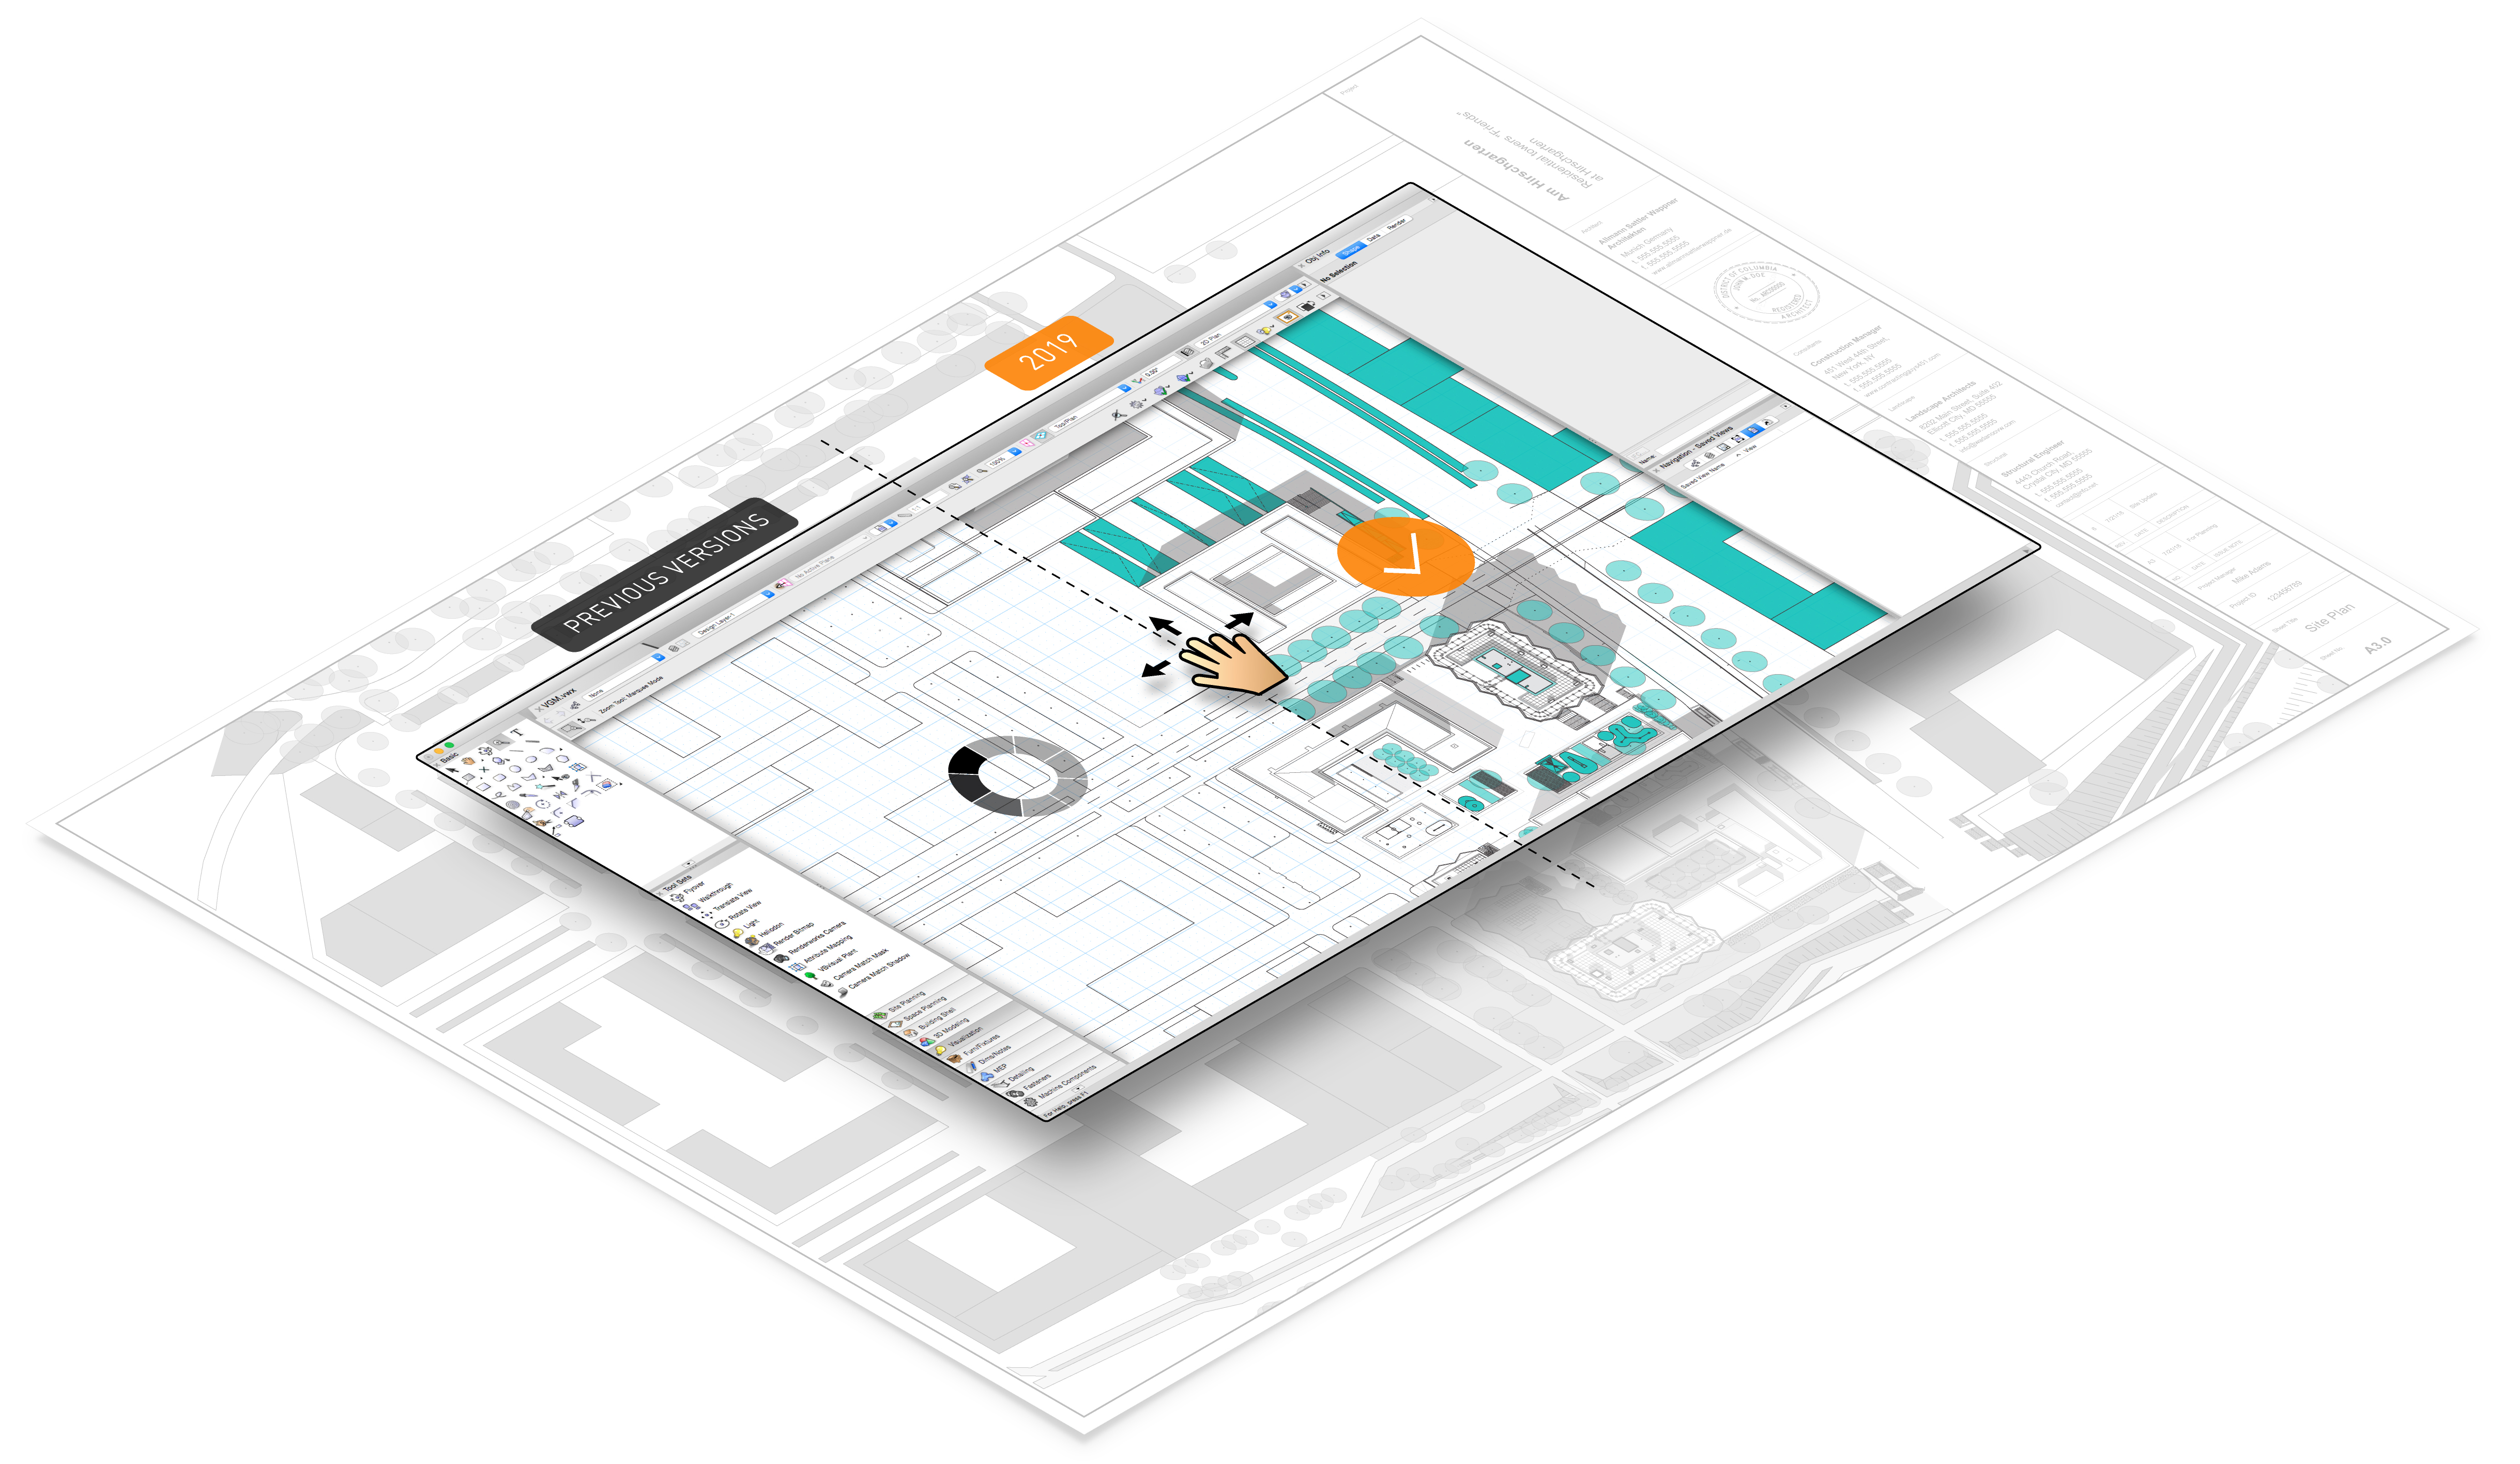 VECTORWORKS GRAPHICS MODULE ON SHEET LAYERS